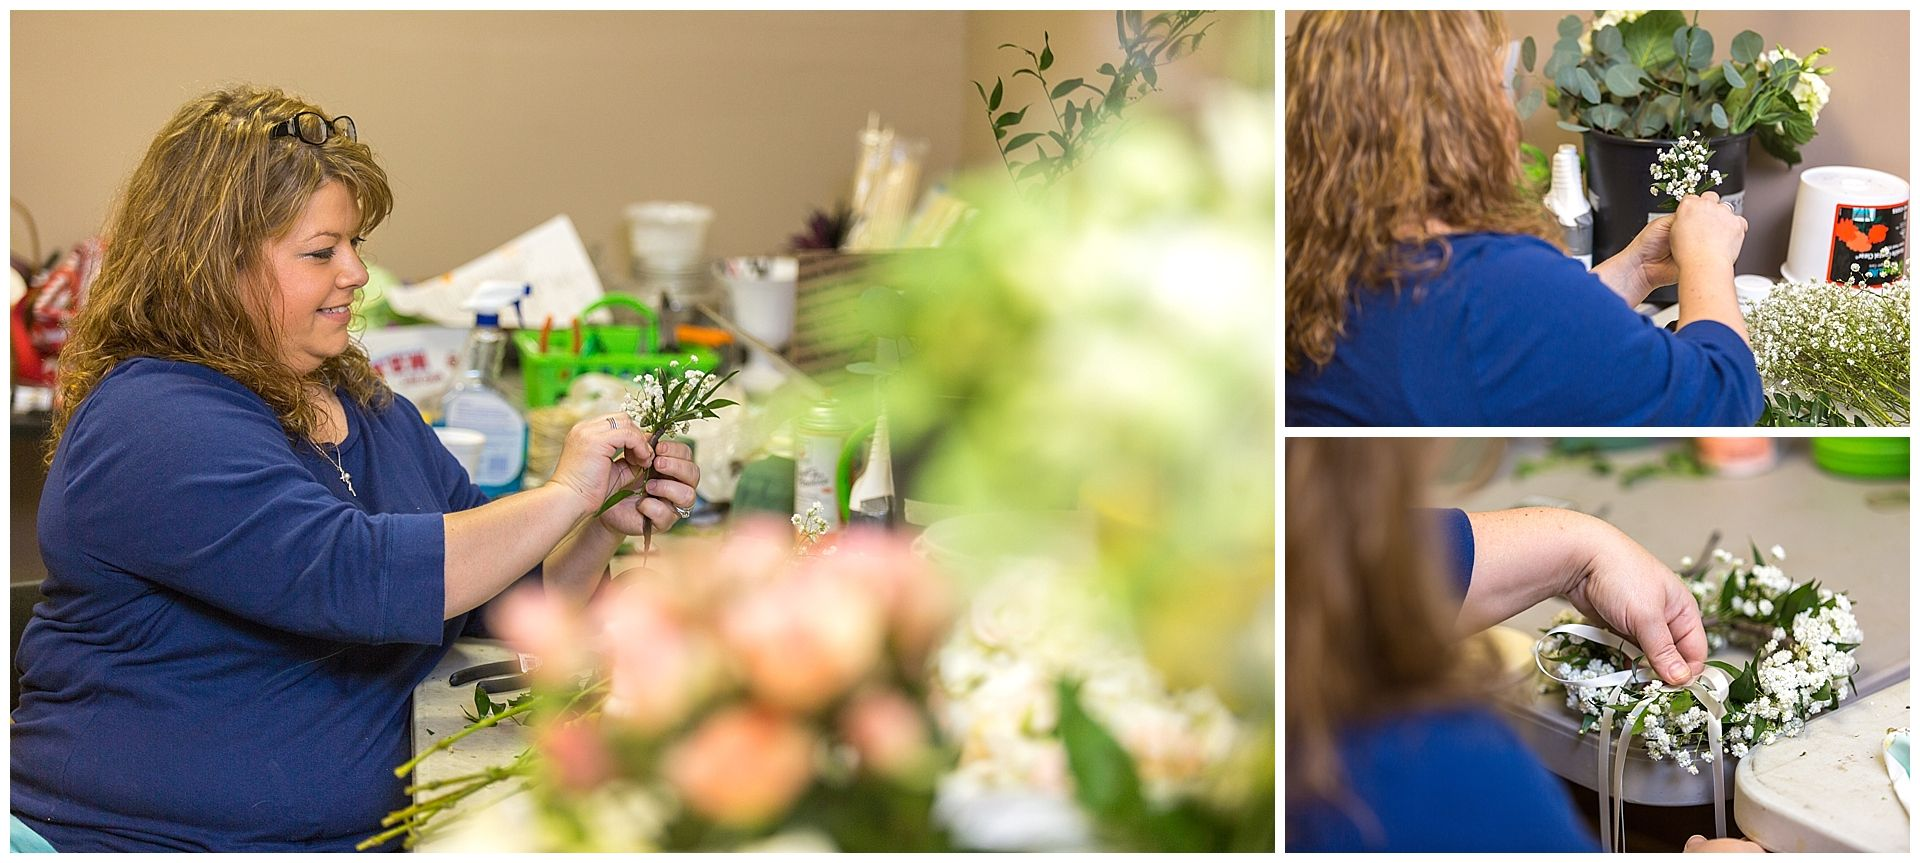 Wedding florist jessica jones the owner of blooms n blossoms wedding florist jessica jones who is the owner of blooms n blossoms in georgetown junglespirit Images